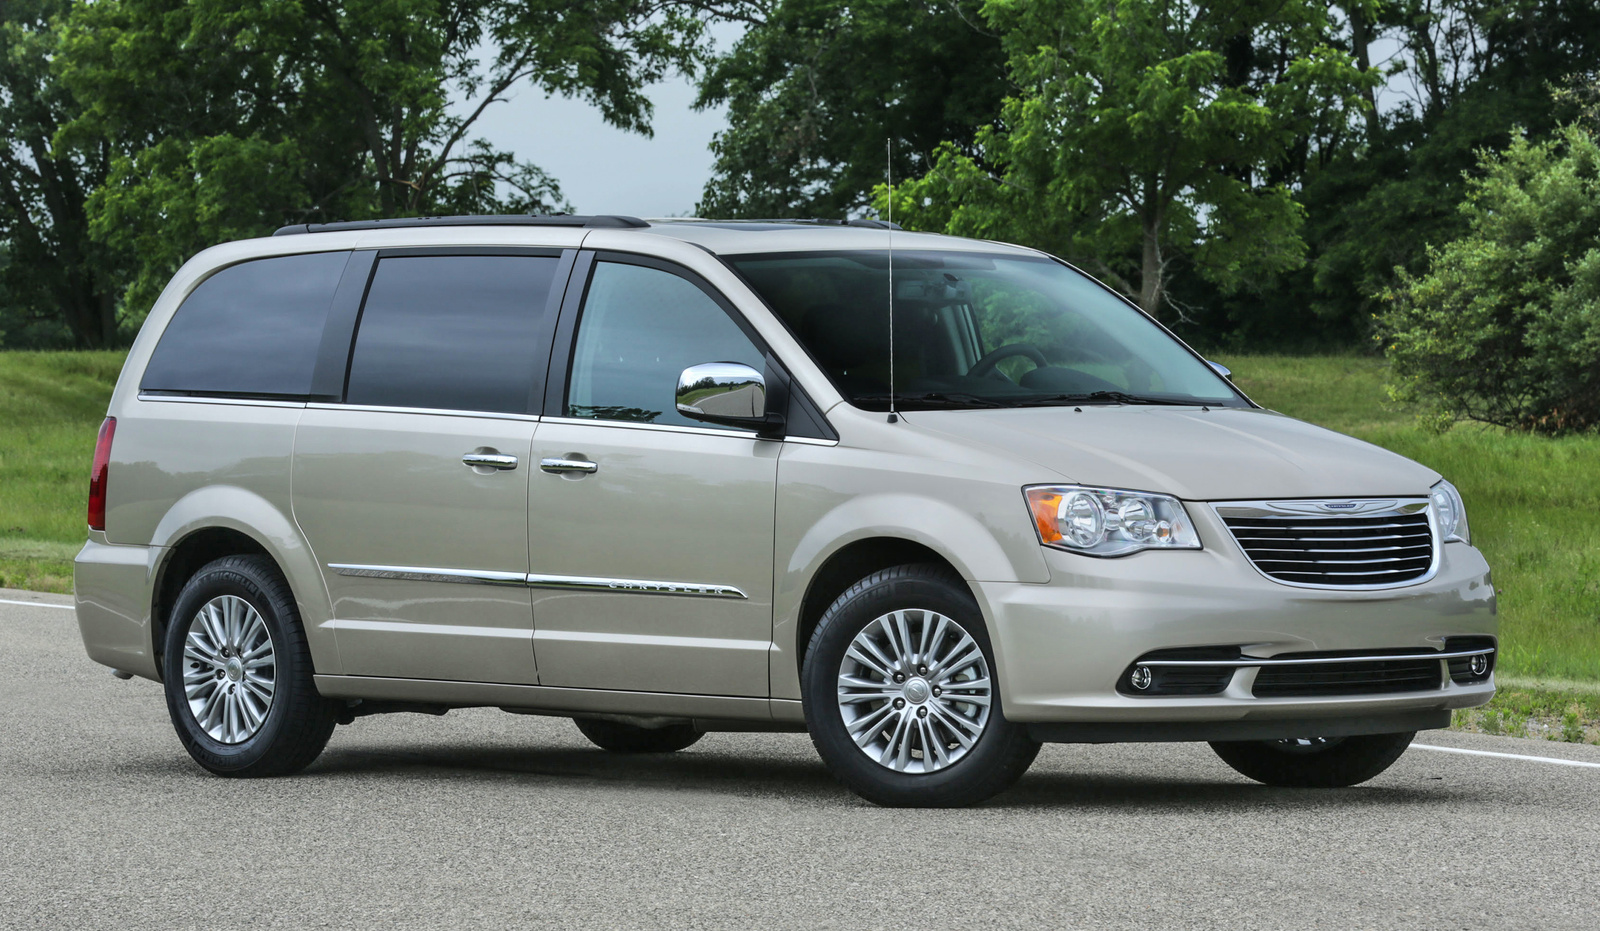 2016 chrysler town & country review